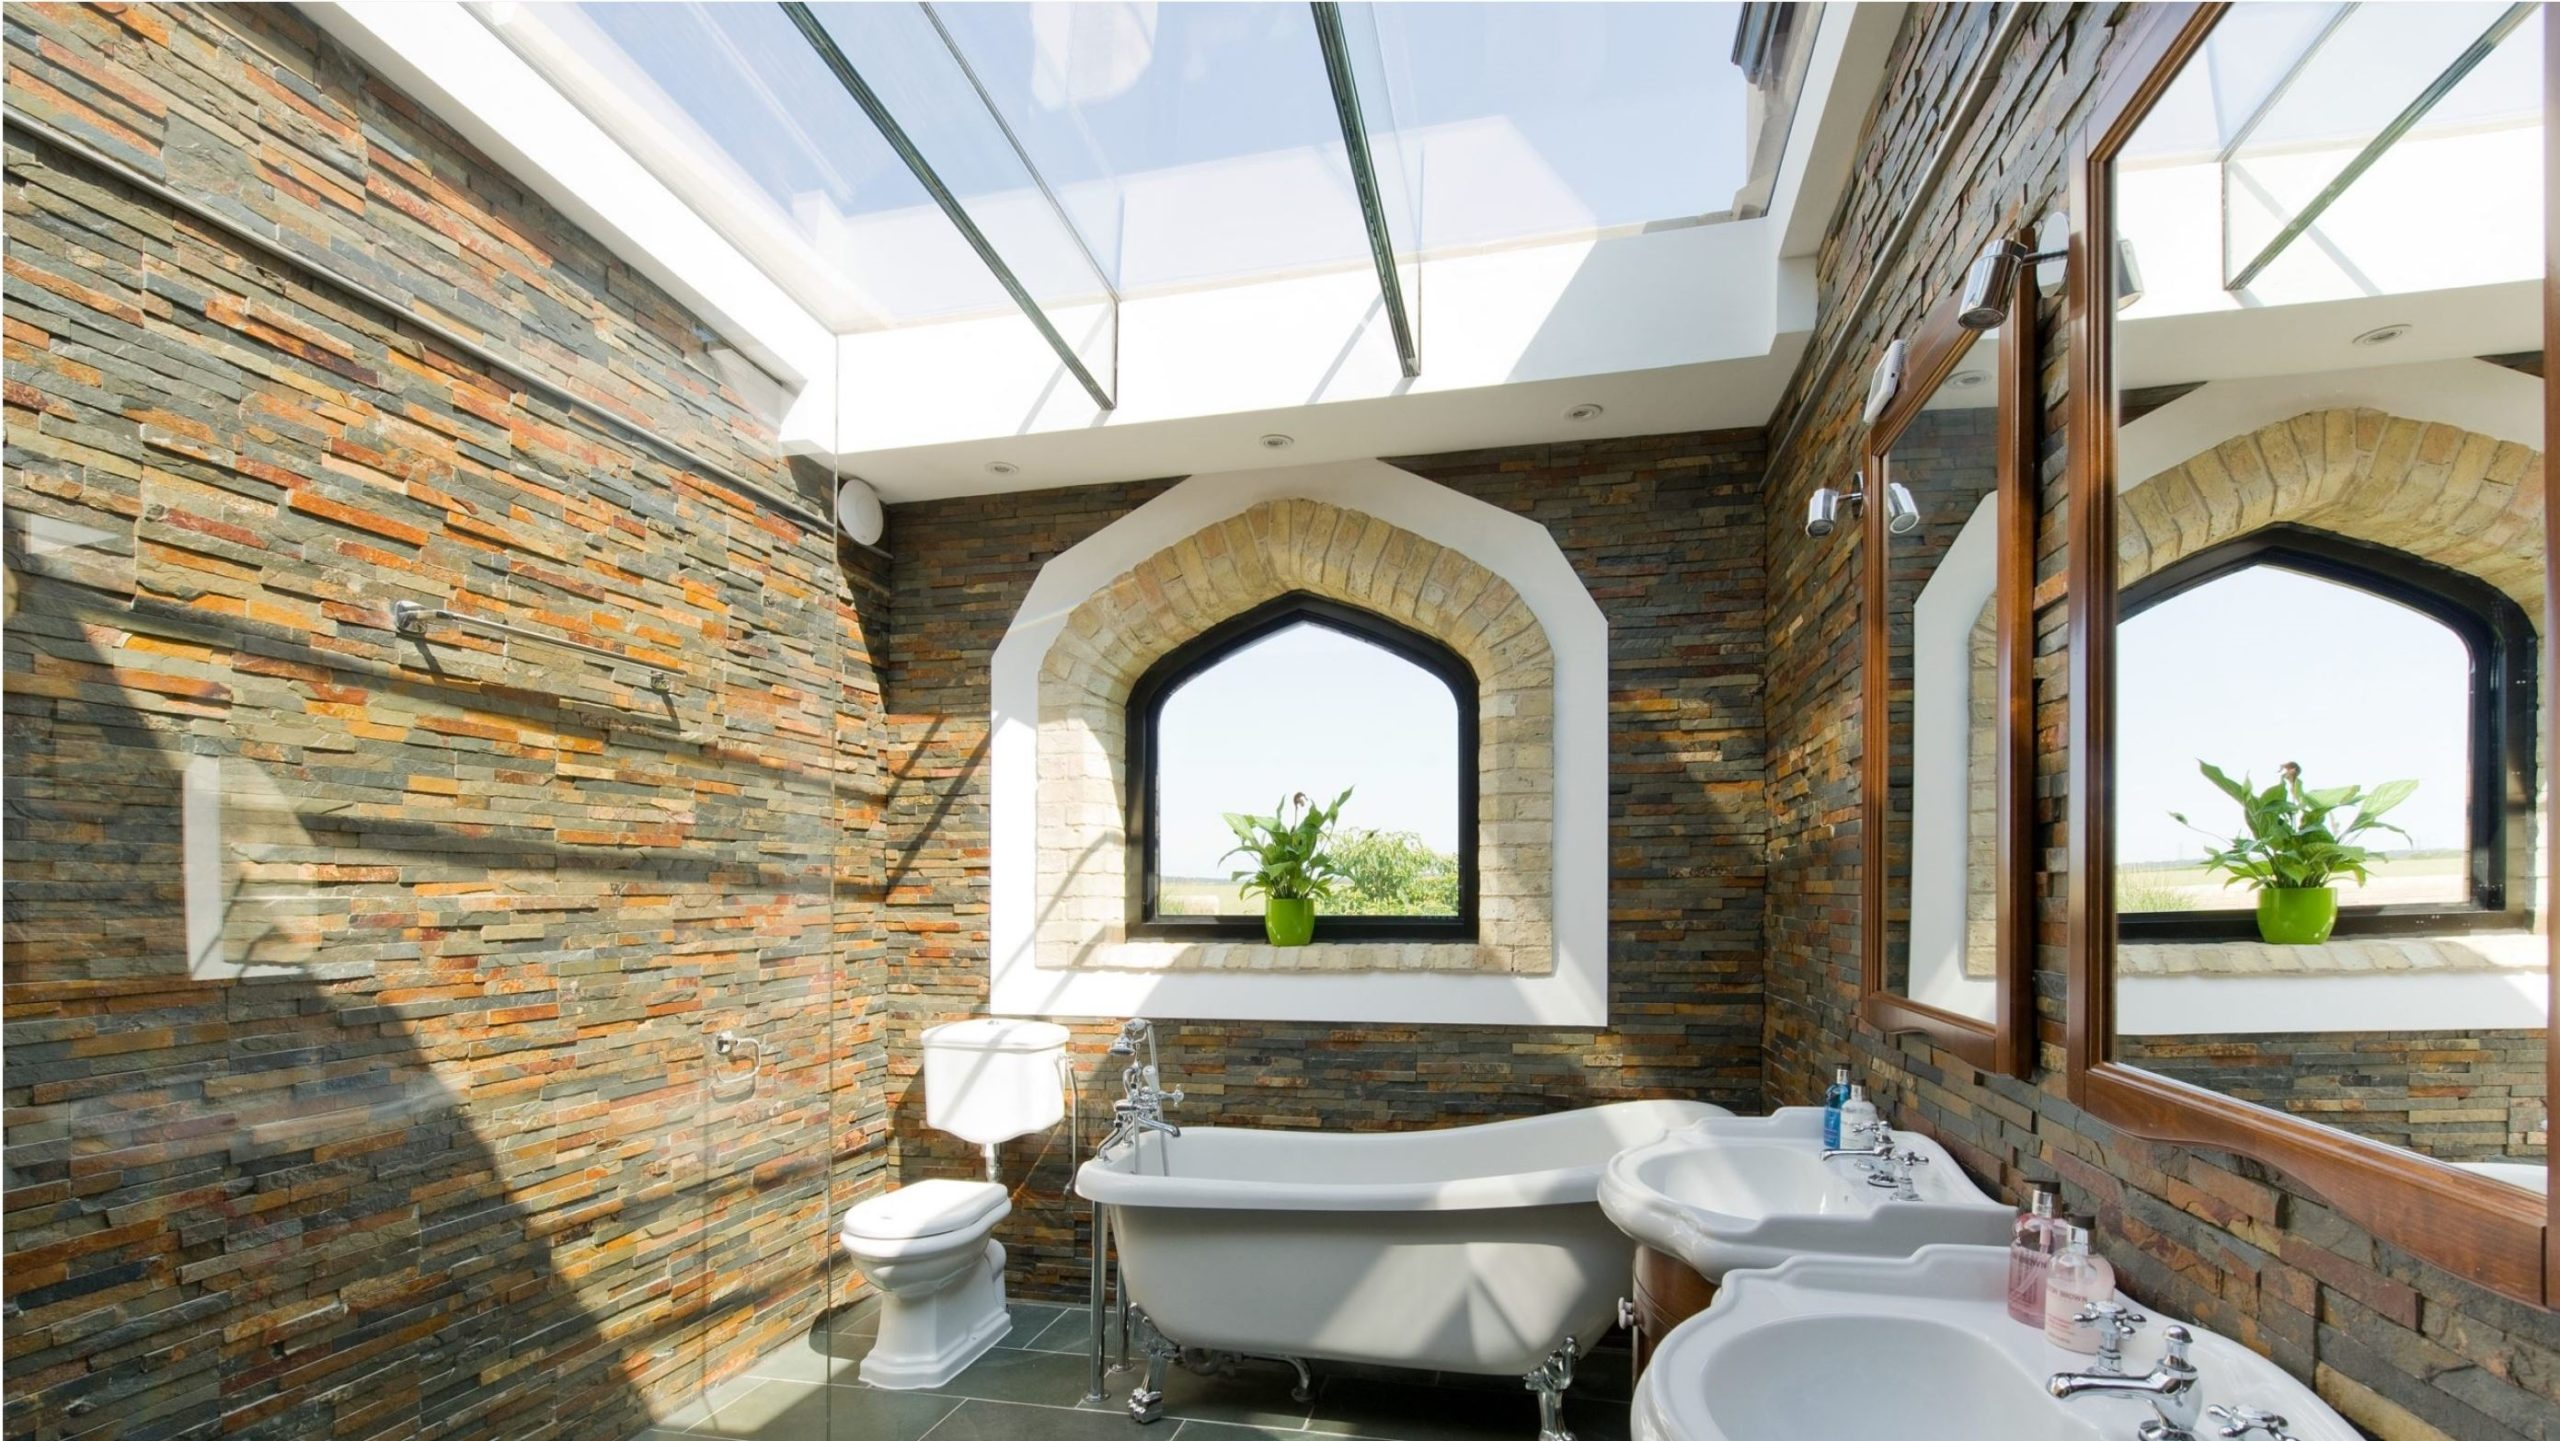 Bathroom benefitting from extra natural light woth opening rooflights